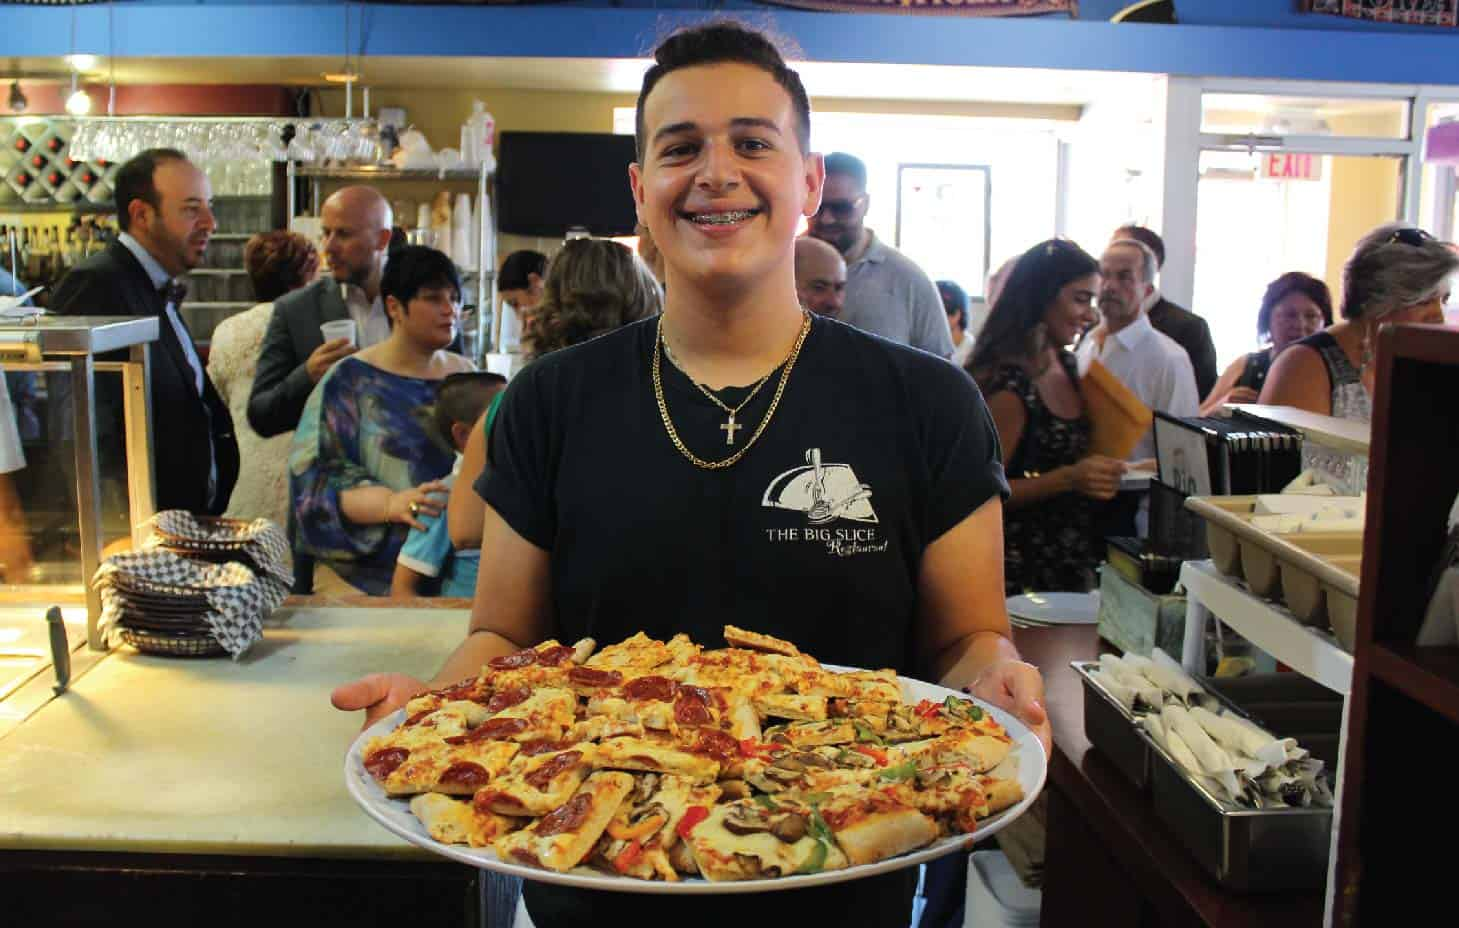 PICTURE OF YOUNG SALVATORE LUCIANNO, GRANDSON OF GIUSEPPE, HOLDING A TRAY OF PIZZA